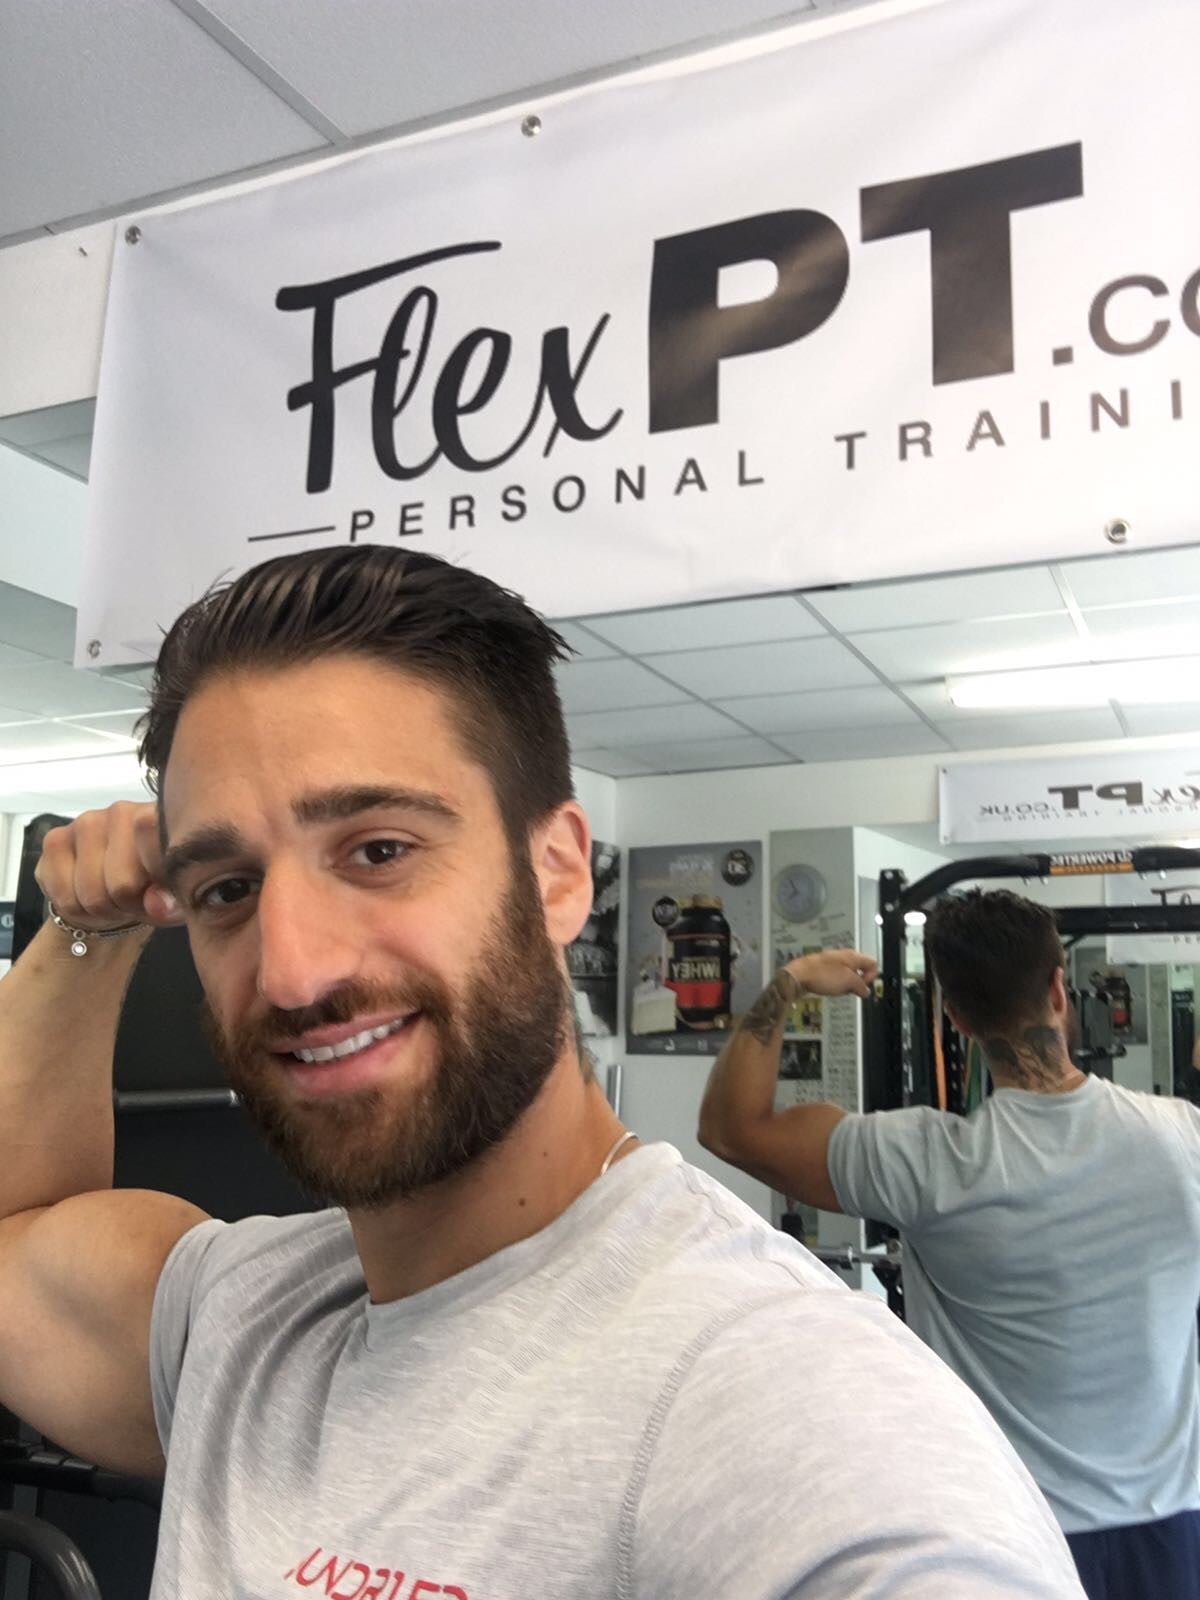 Flex Personal Trainer Bicep Strong Gym Smiling